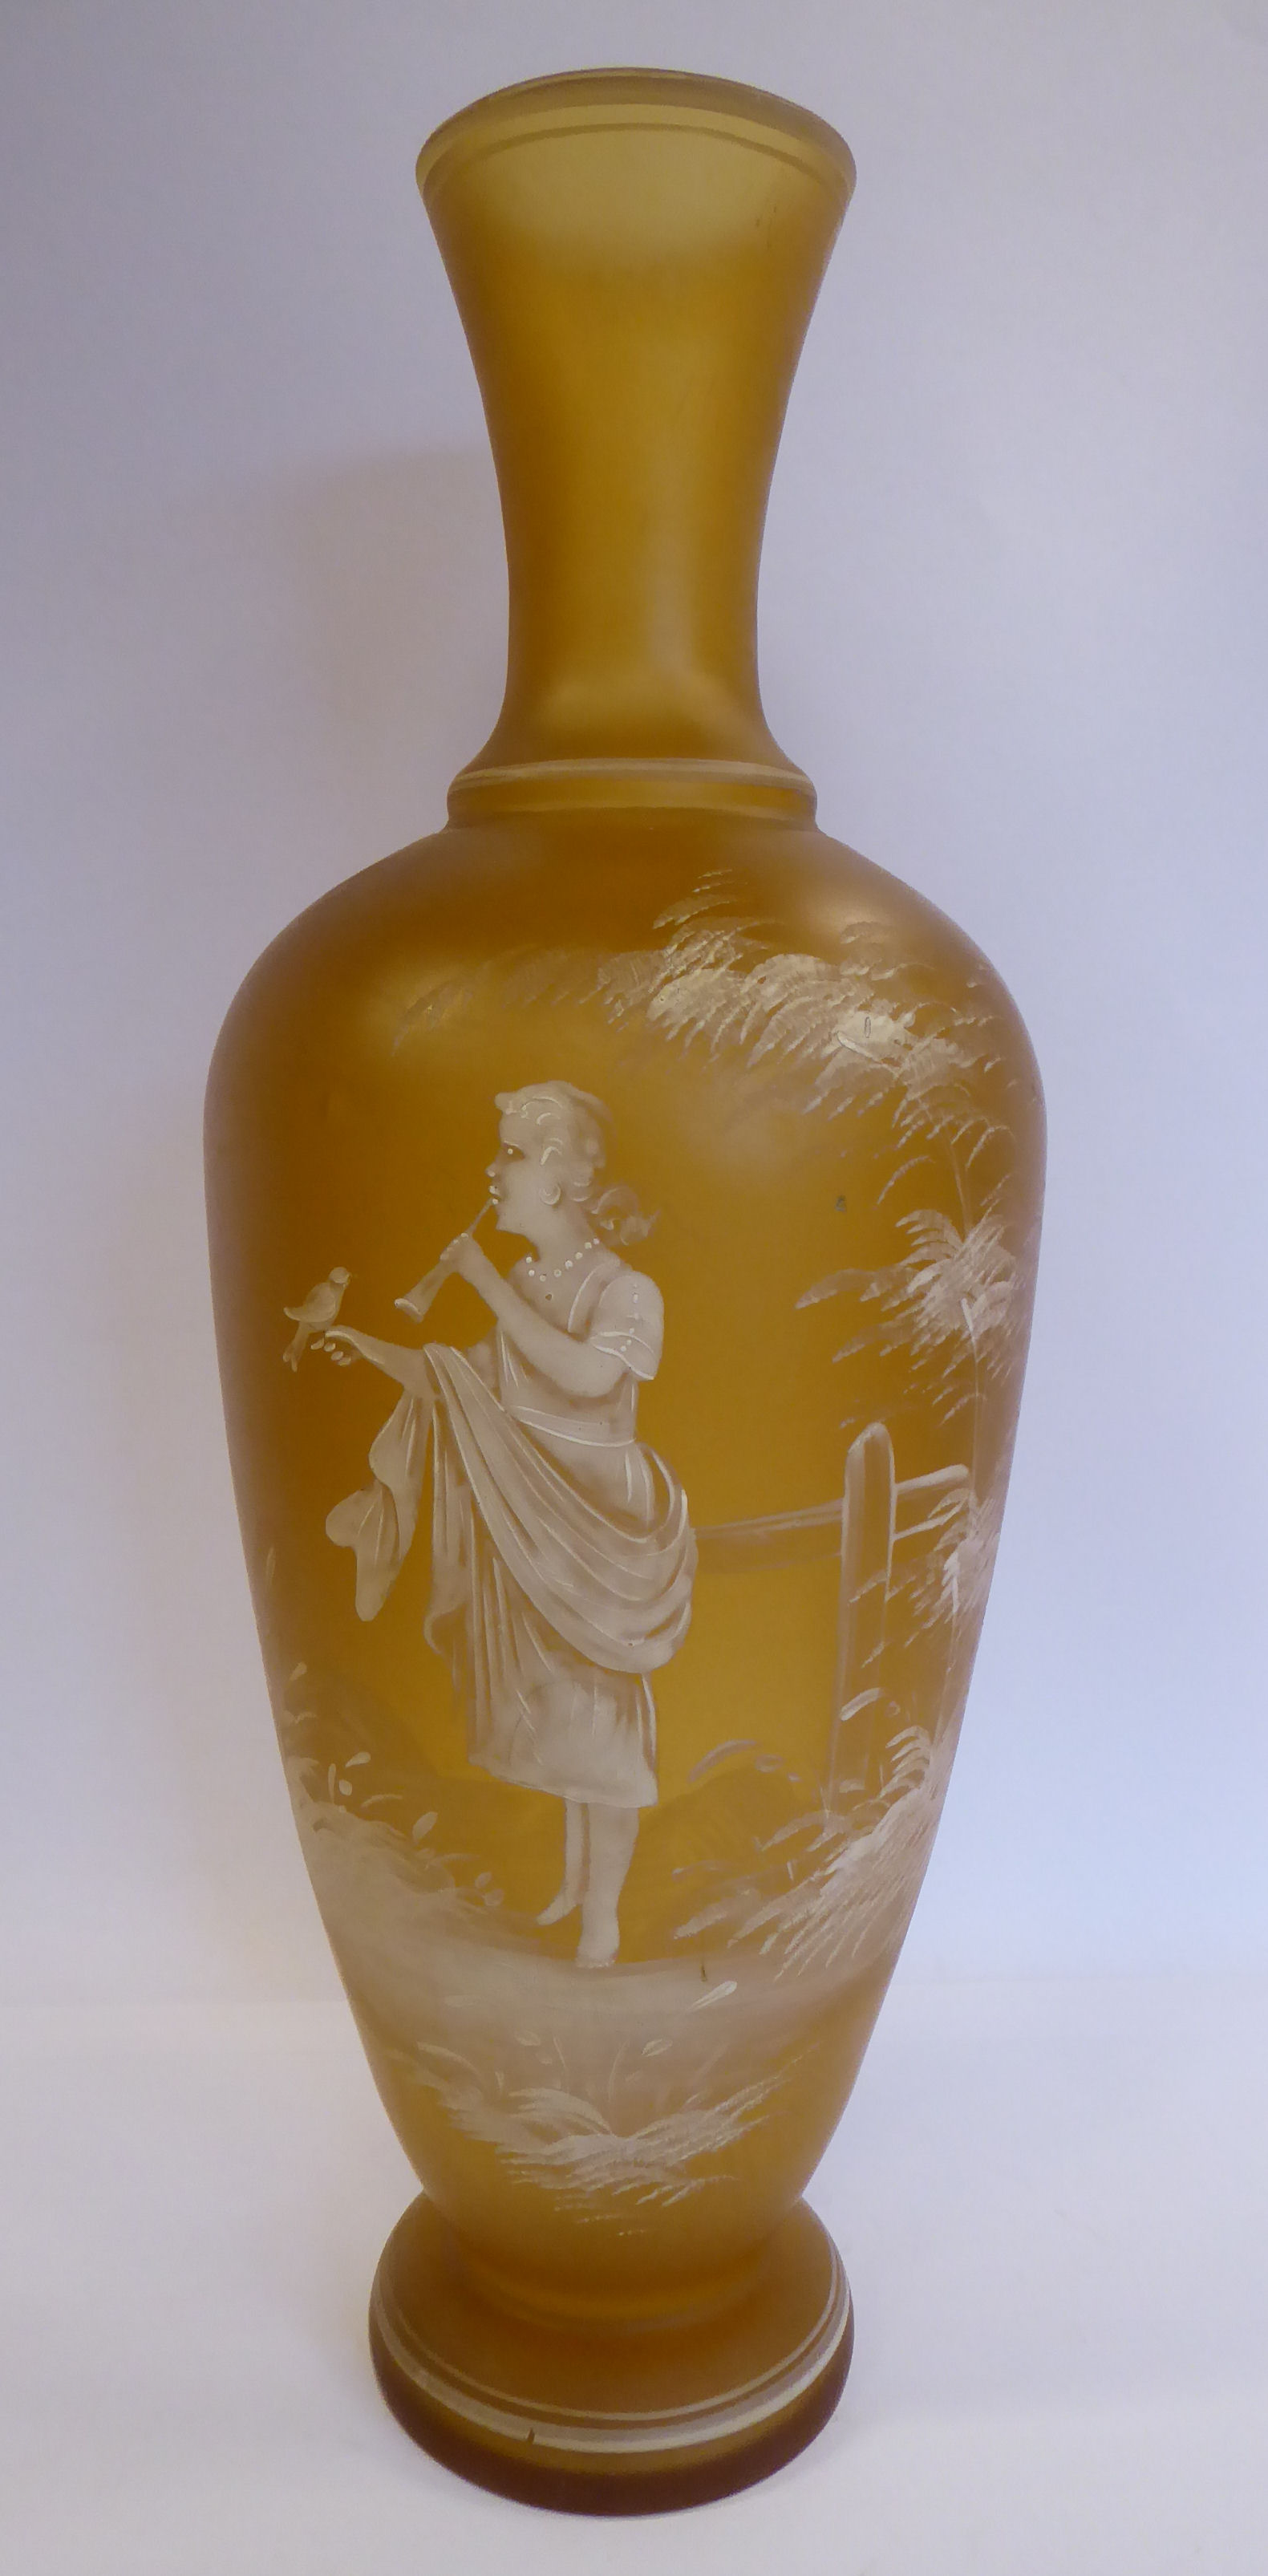 Lot 27 - In the manner of Mary Gregory - a semi-opaque amber coloured glass vase of baluster form with a